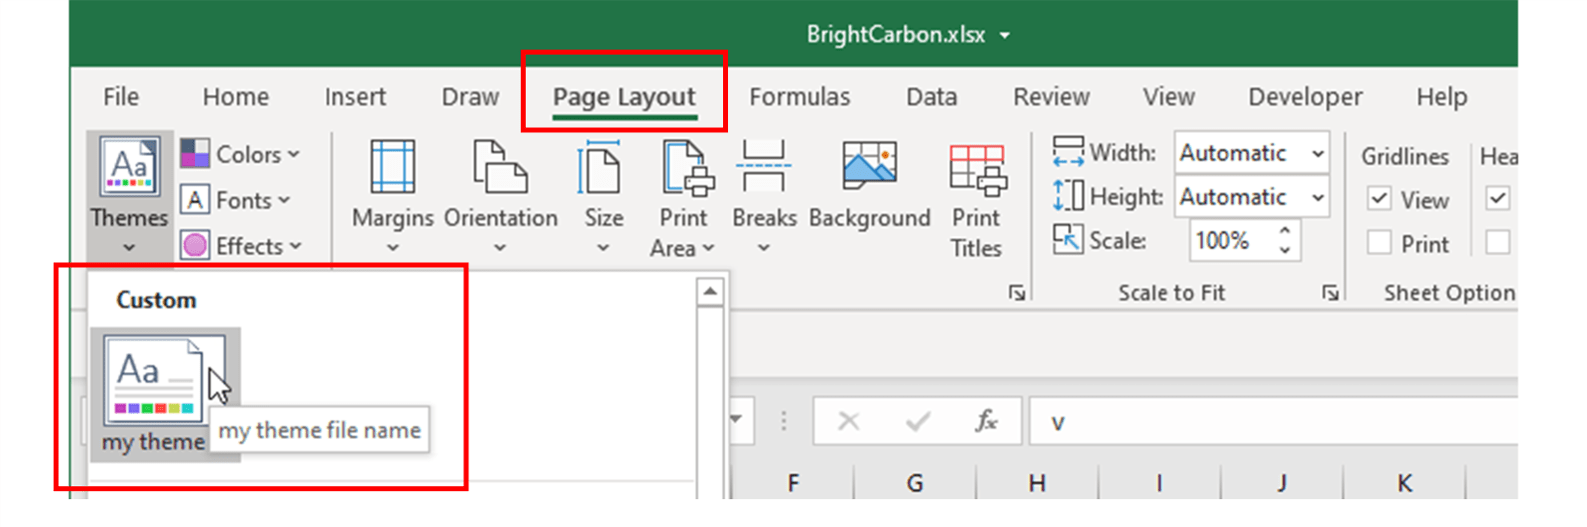 Screenshot showing where to locate a custom Office theme in Excel